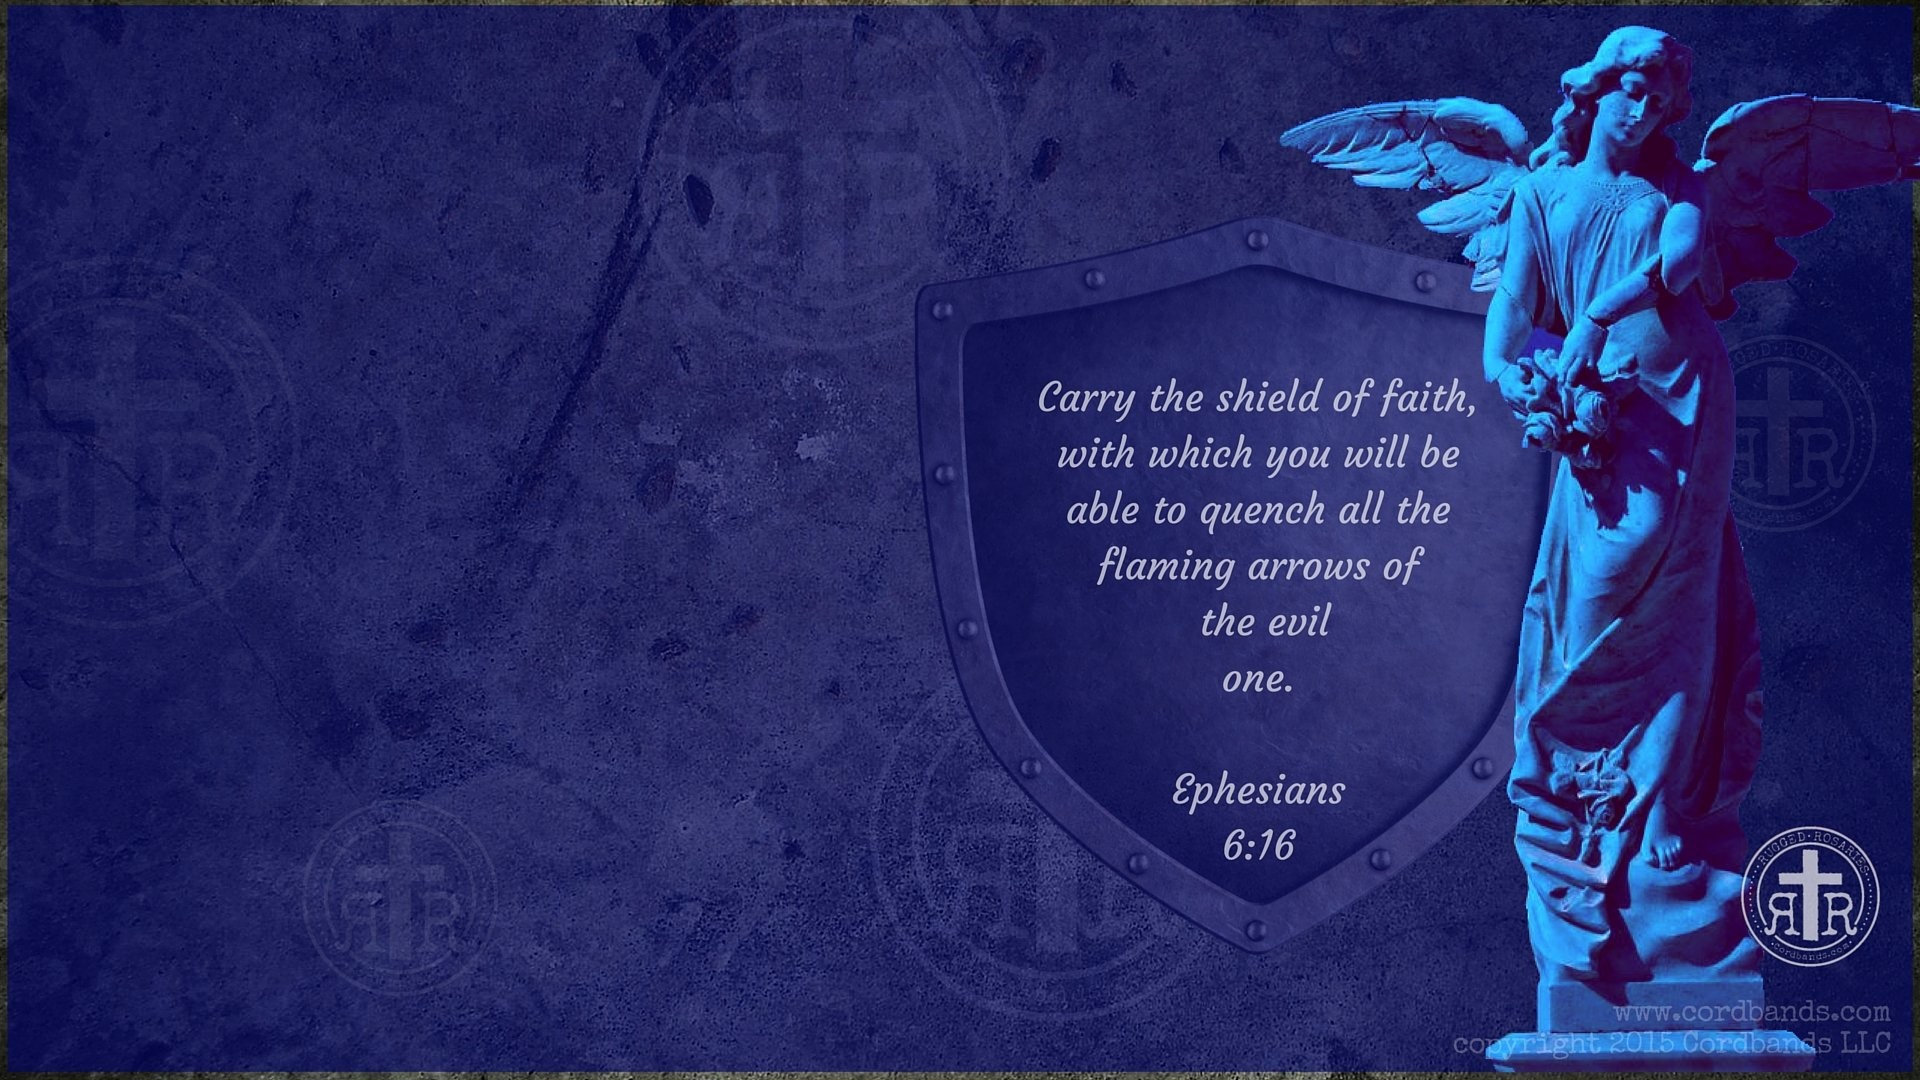 Res: 1920x1080, Shield of Faith Eph 6:16 for Desktop () CLICK HERE